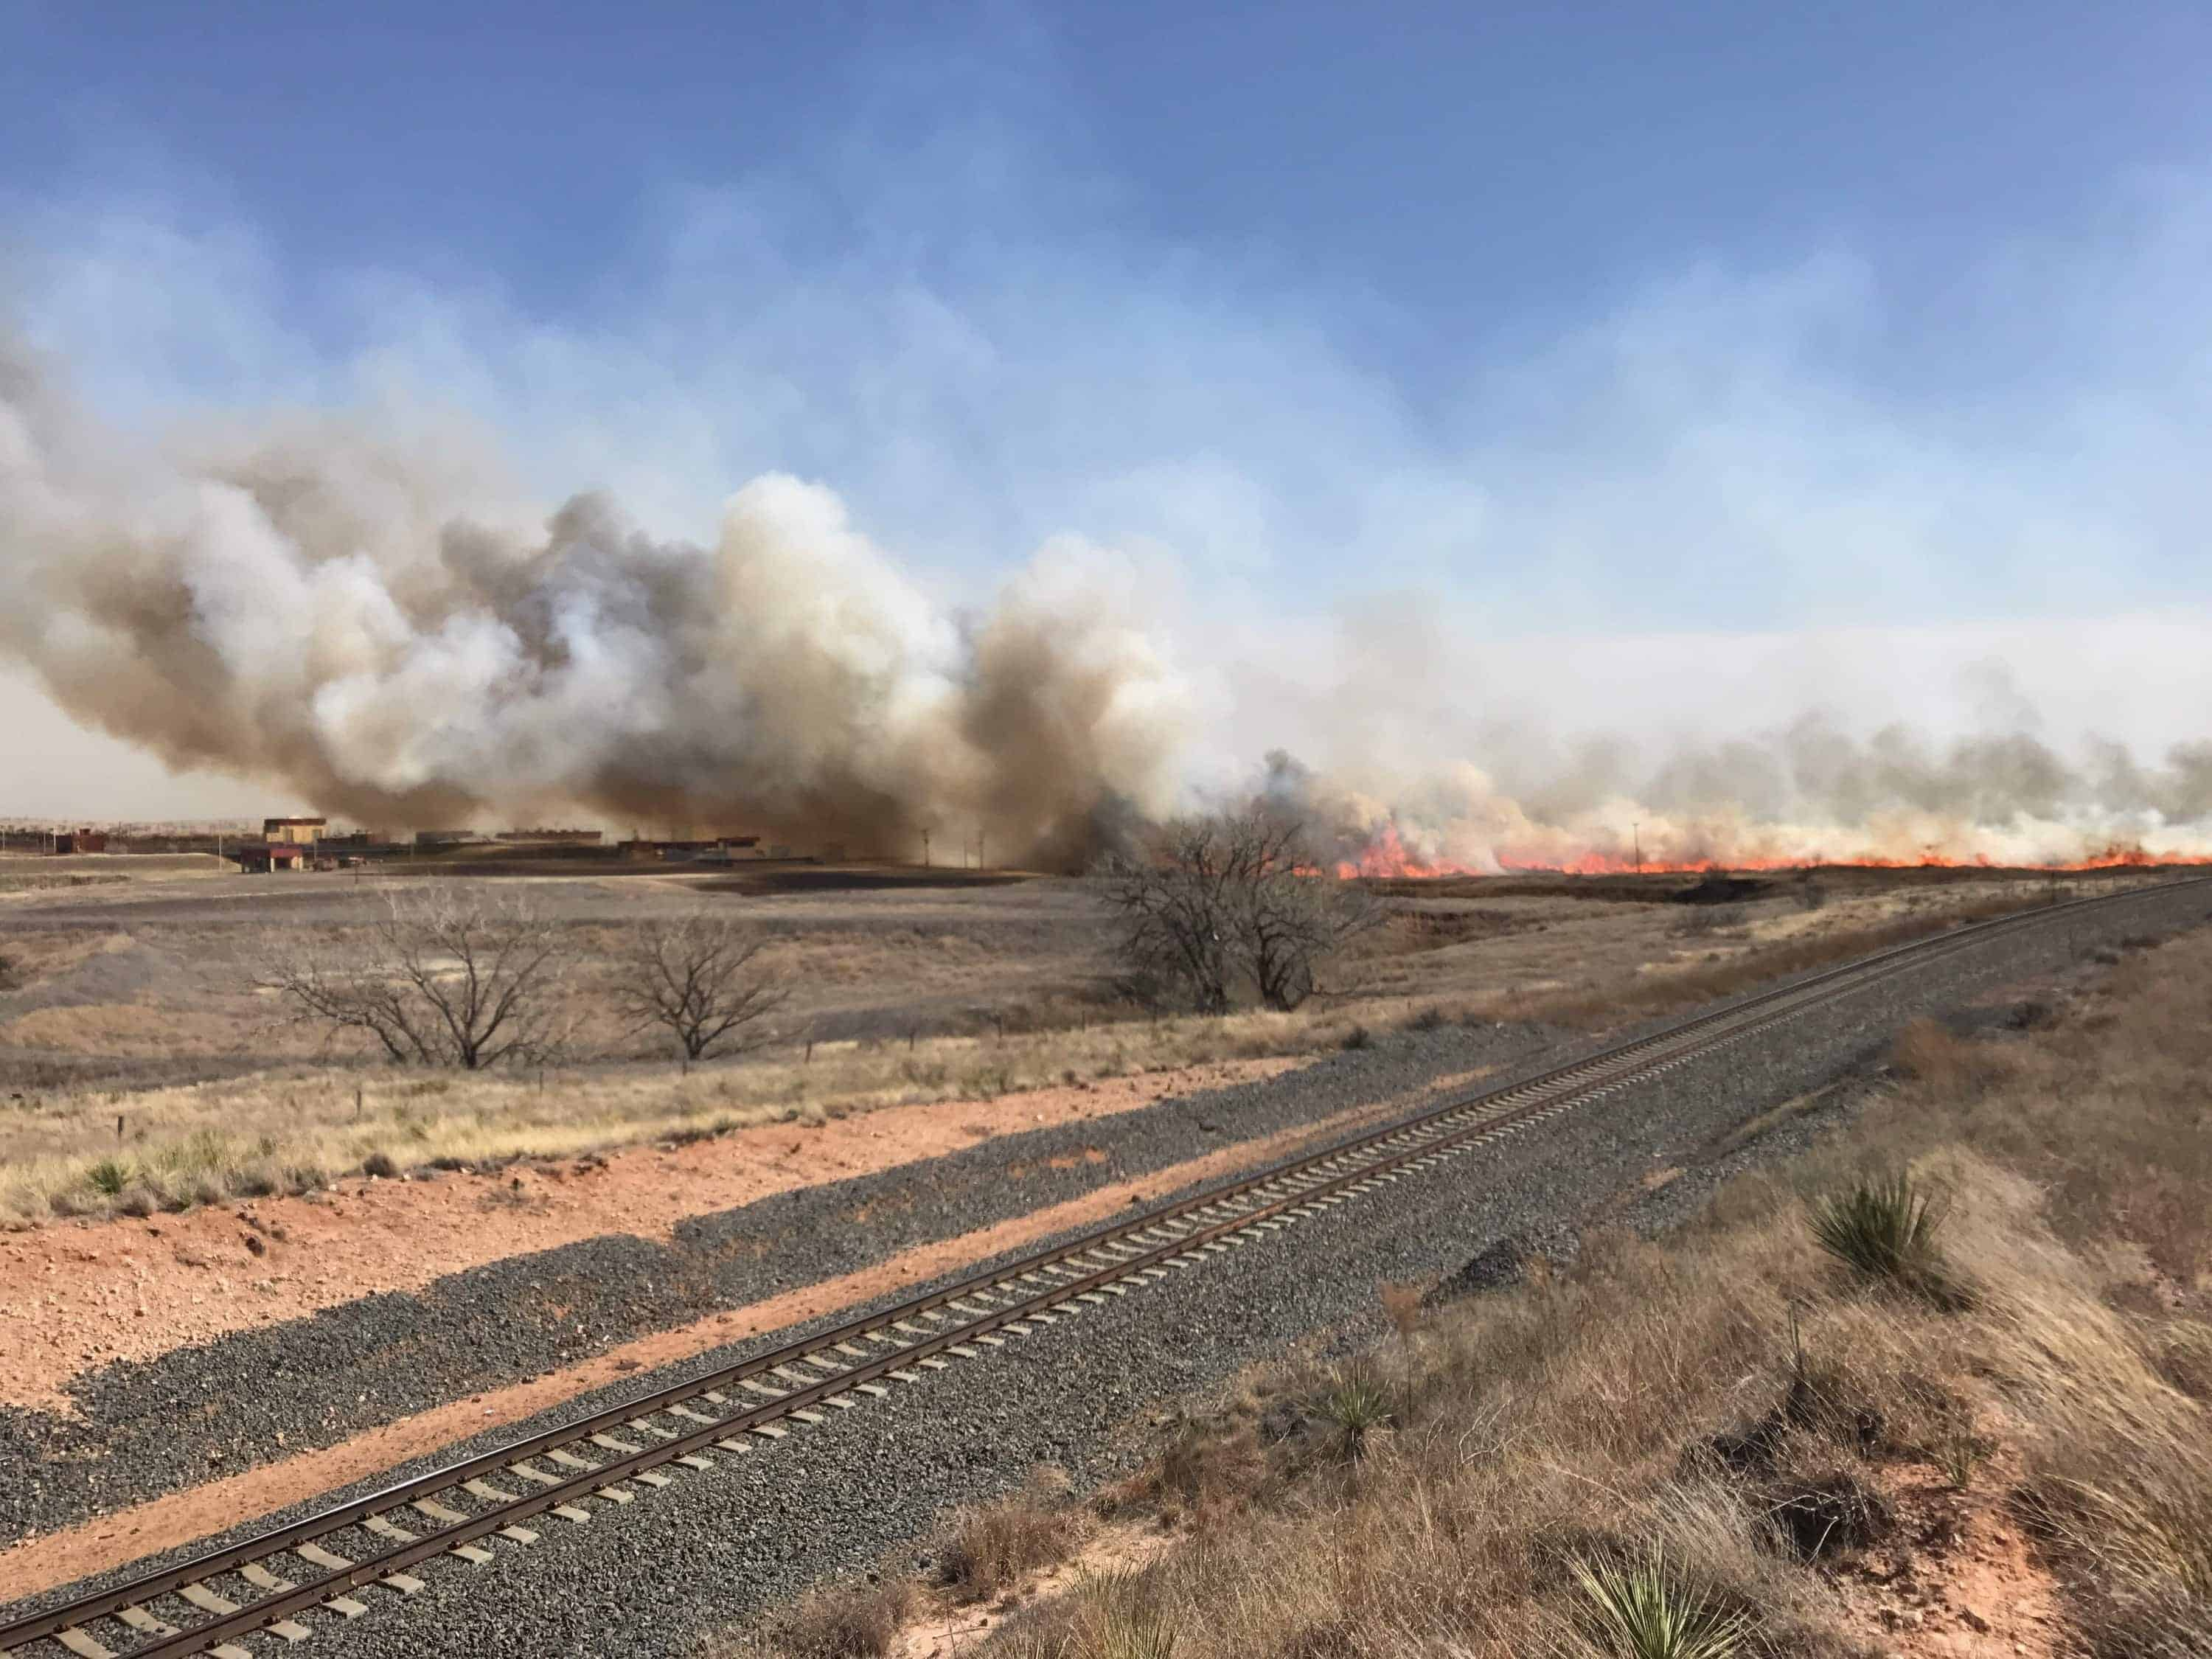 The Dumas Complex fire burned 28,800 acres in Texas. Catastrophic fires also raged in Kansas and Oklahoma. (Photo: Texas A&M Forest Service)